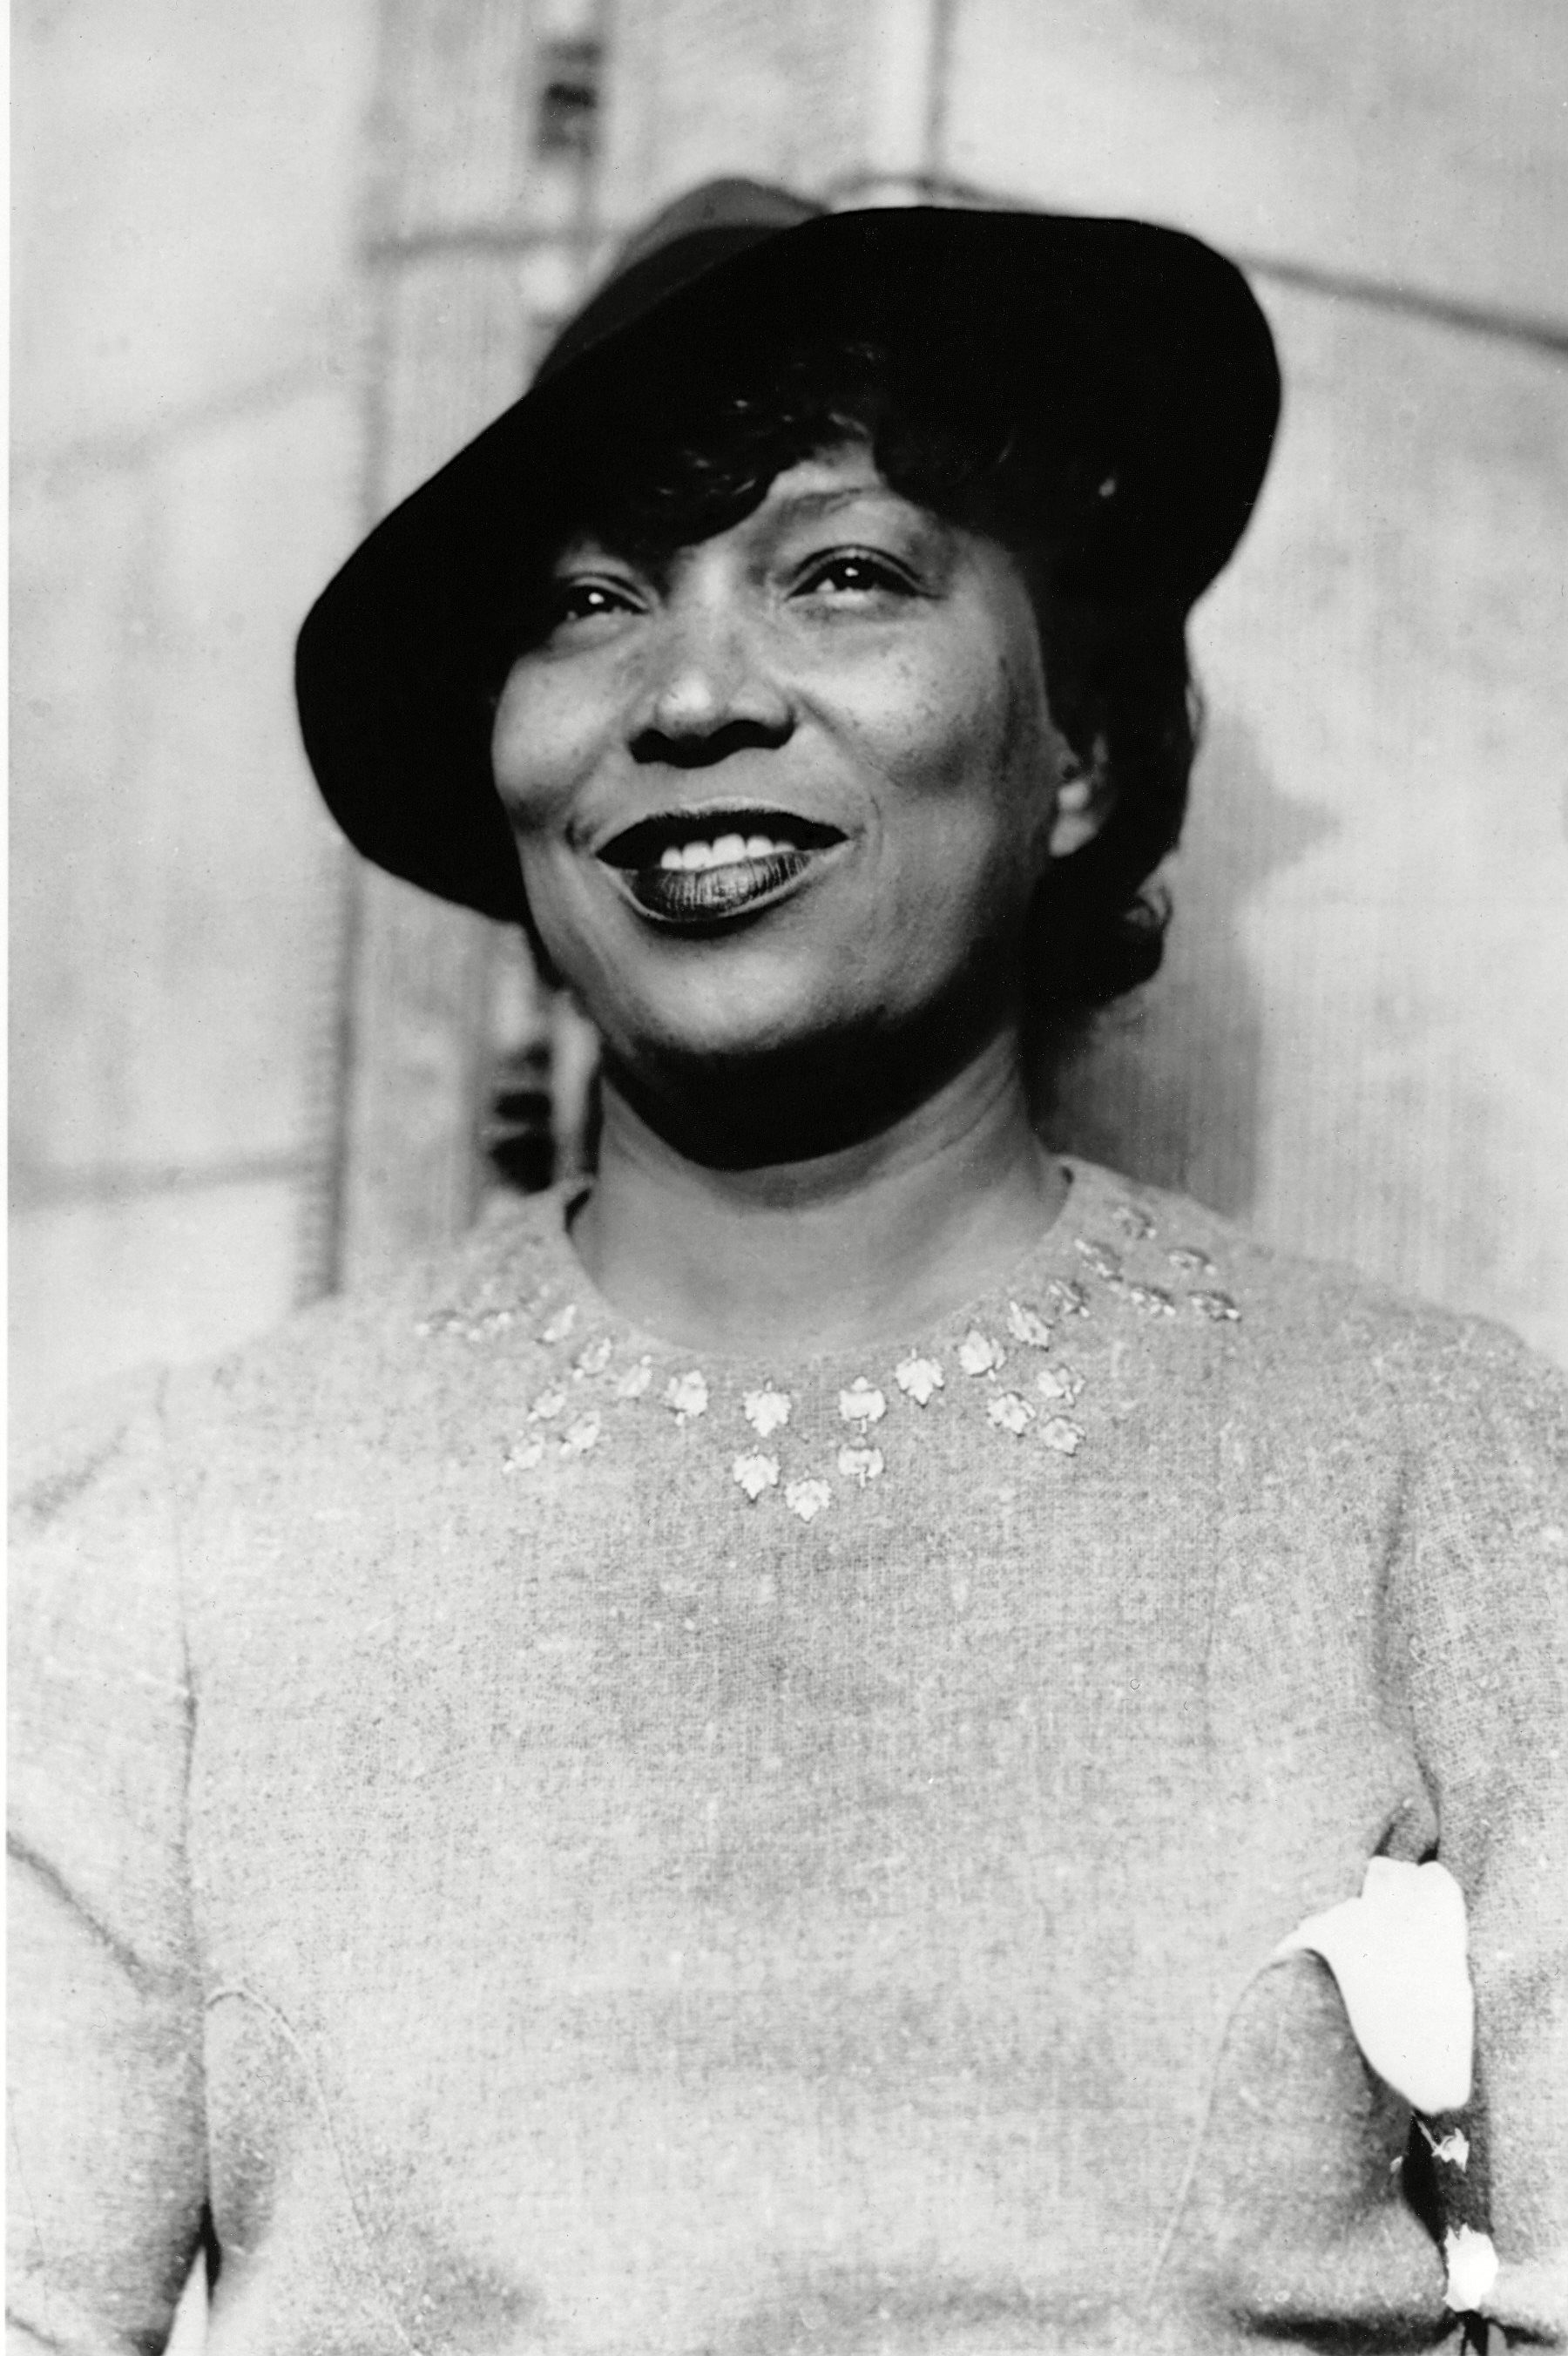 Mandatory Credit: Photo by Everett/Shutterstock (10274961a) Zora Neale Hurston (1891-1960) incorporated African American culture and folk ways into her plays, stories, novels. Historical Collection